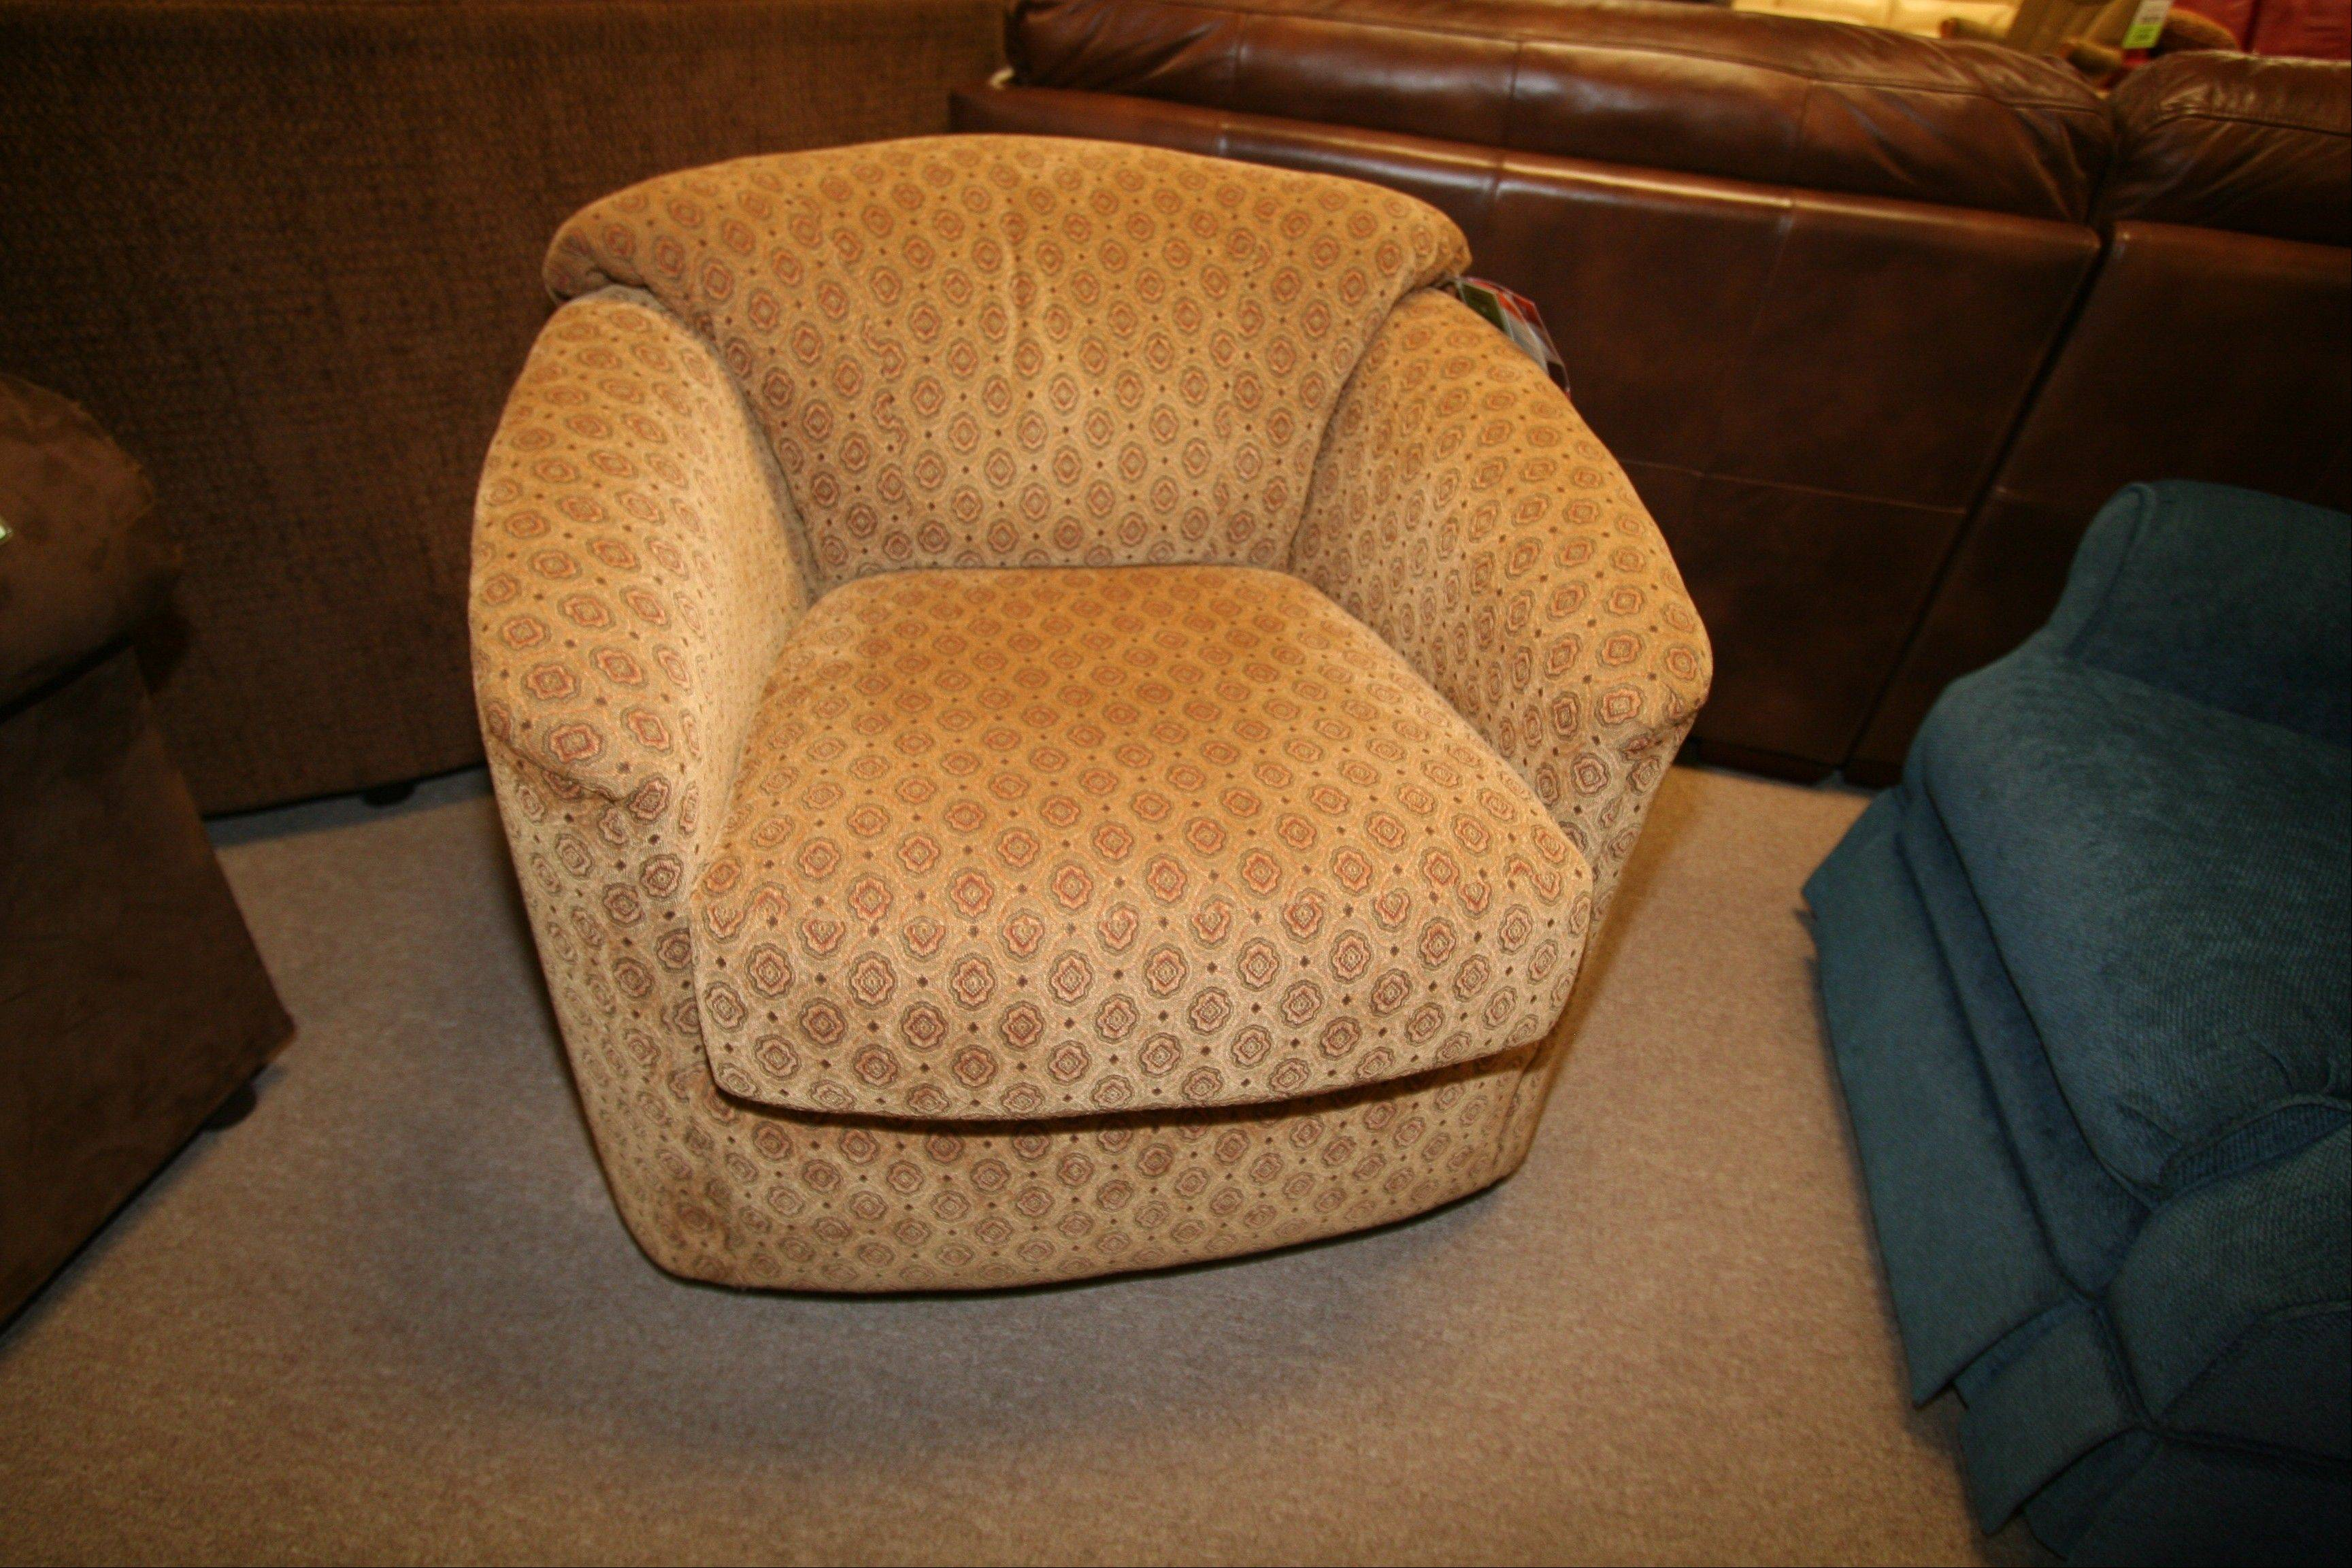 A fabric swivel chair as you enter the room is inviting.